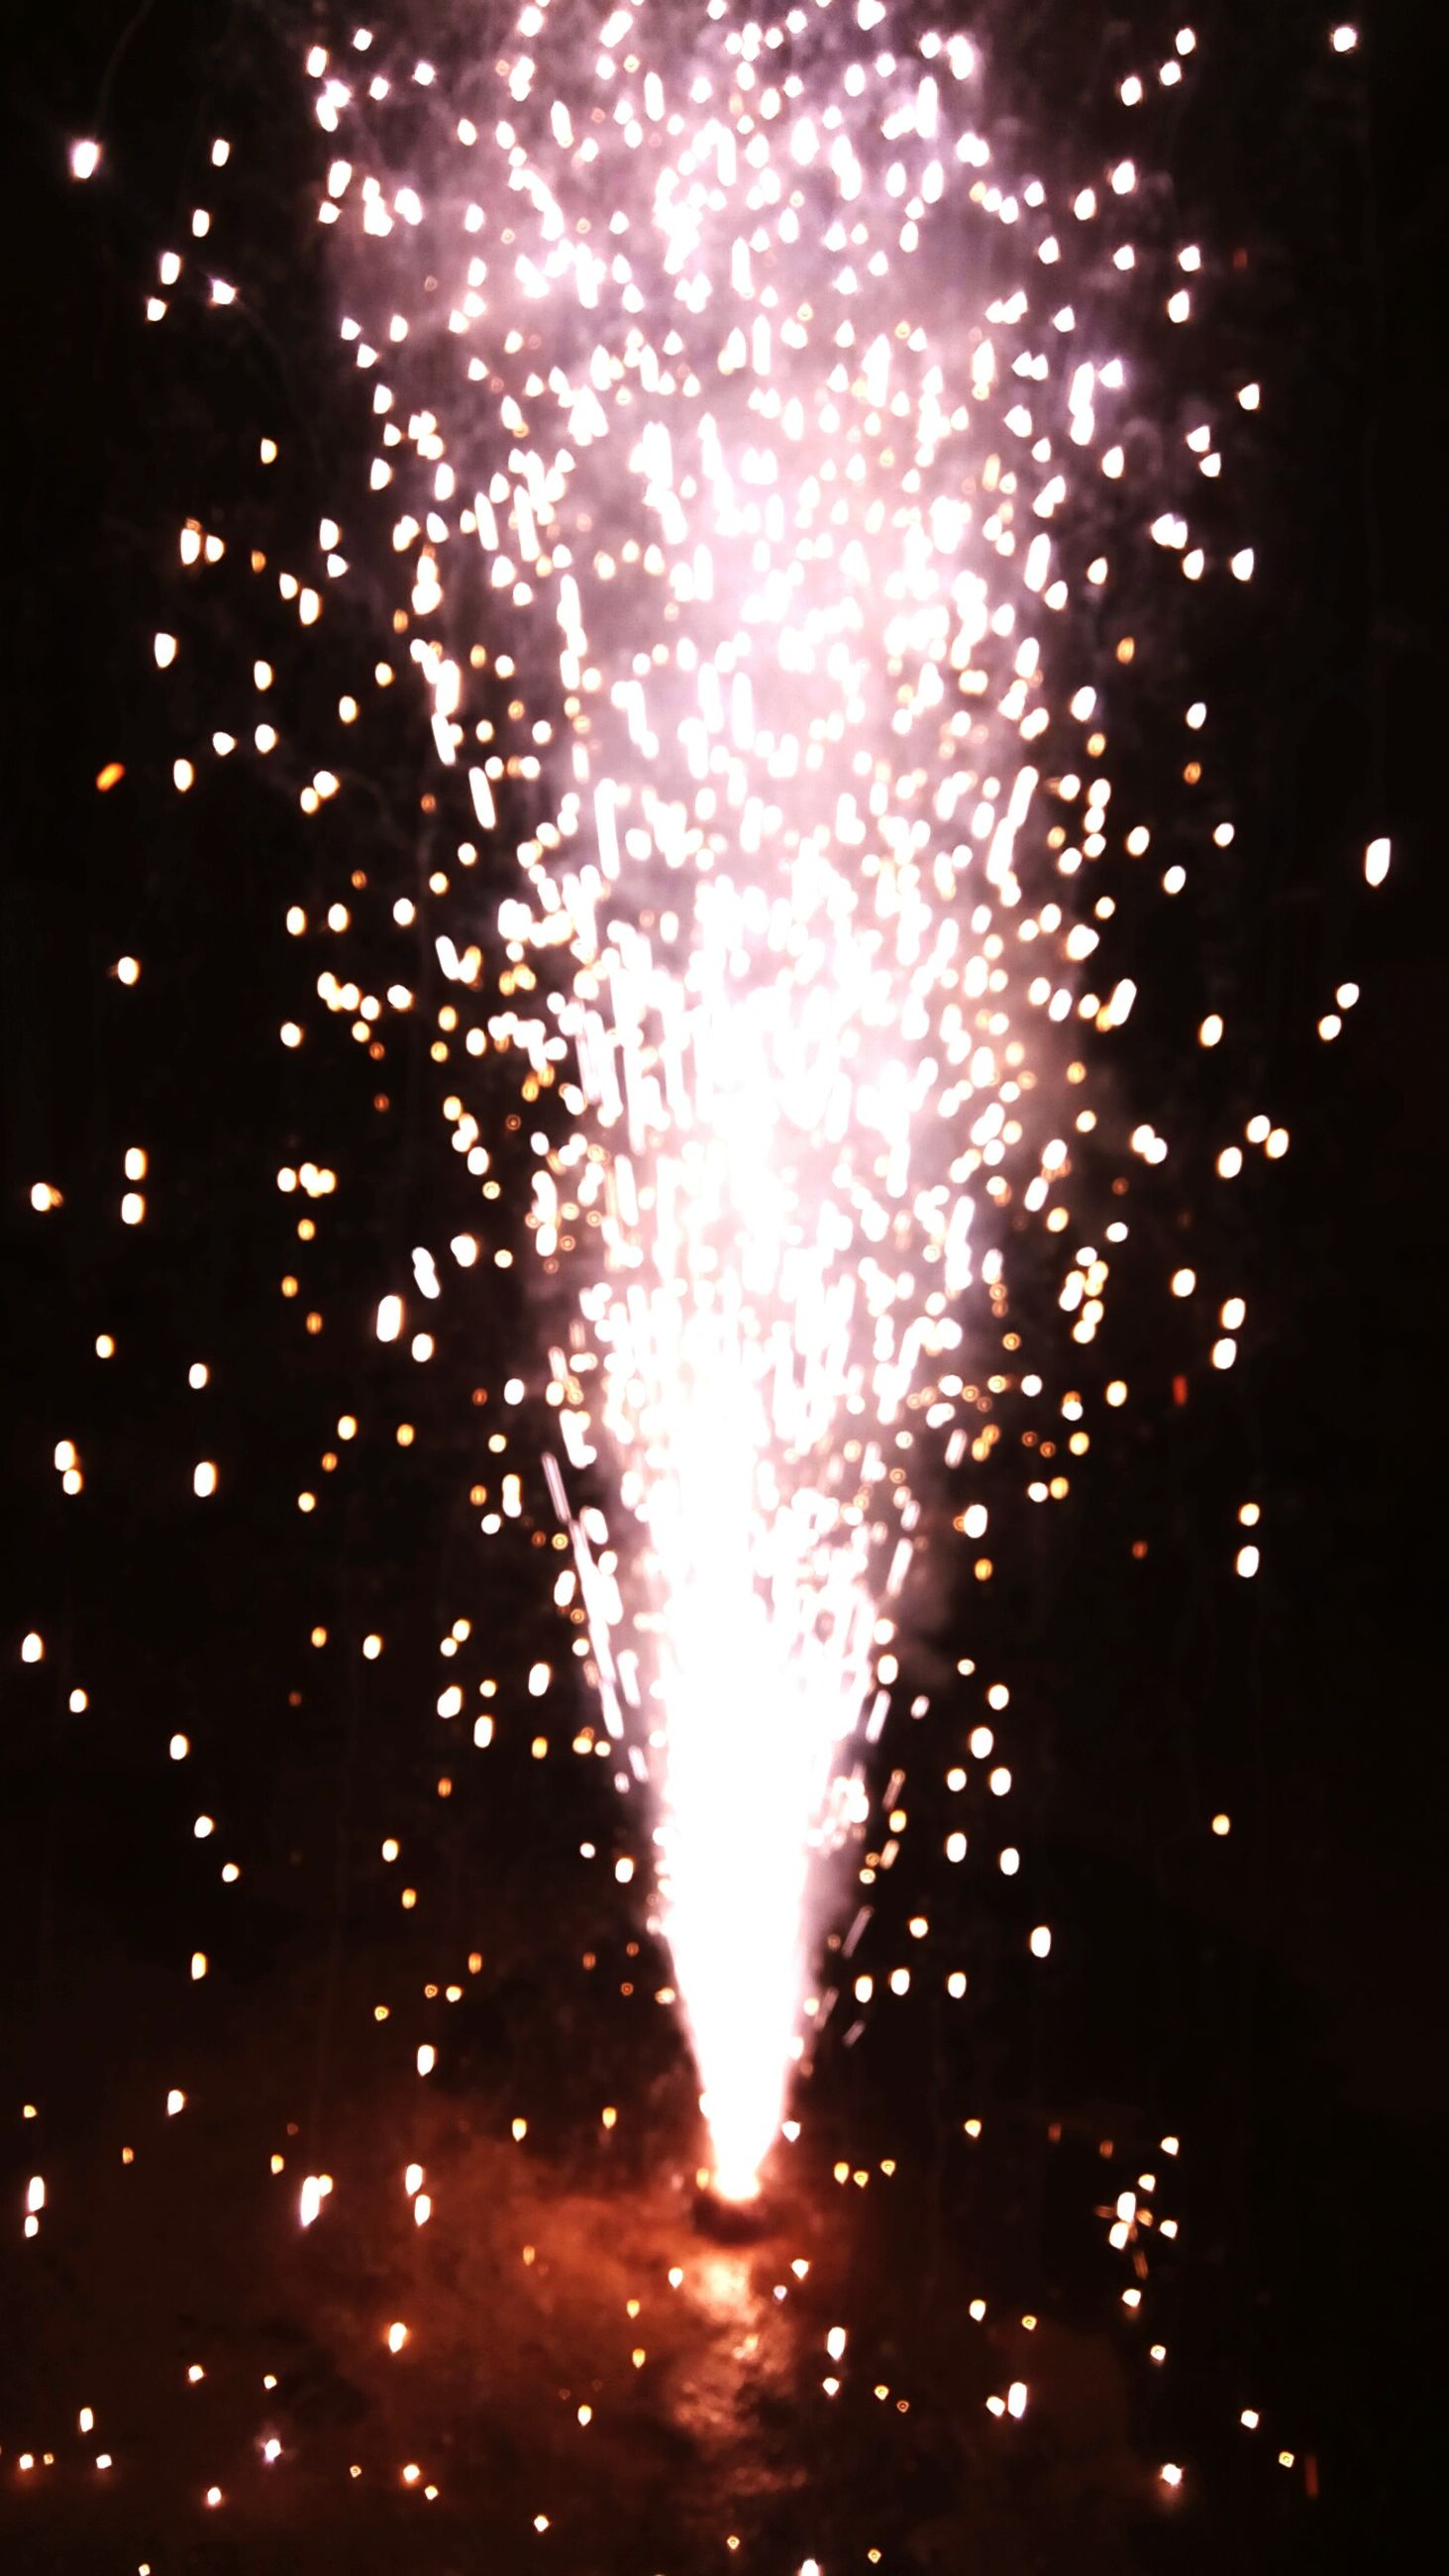 night, illuminated, firework display, celebration, glowing, low angle view, long exposure, firework - man made object, exploding, sparks, motion, firework, arts culture and entertainment, light, lighting equipment, sky, blurred motion, event, celebration event, light - natural phenomenon